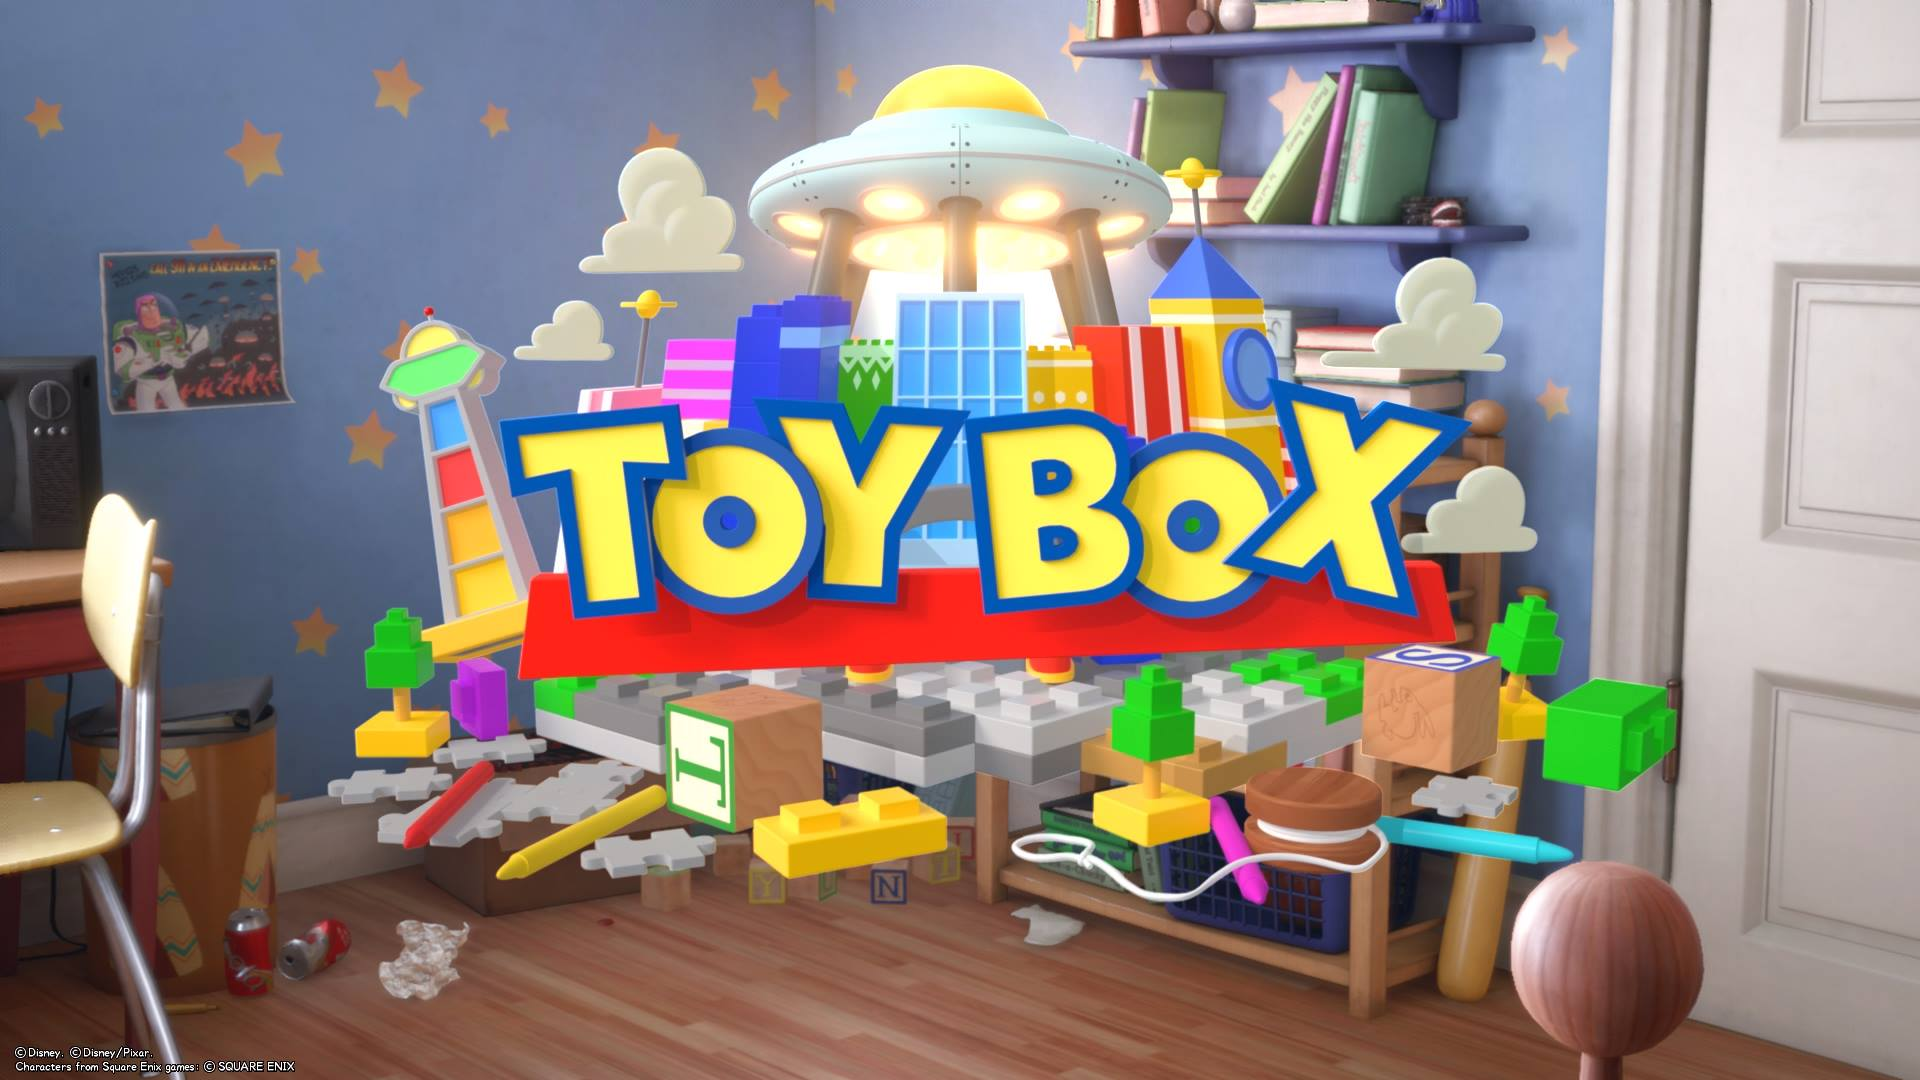 The 4th world that unlocks in Kingdom Hearts 3 is Toy Box.